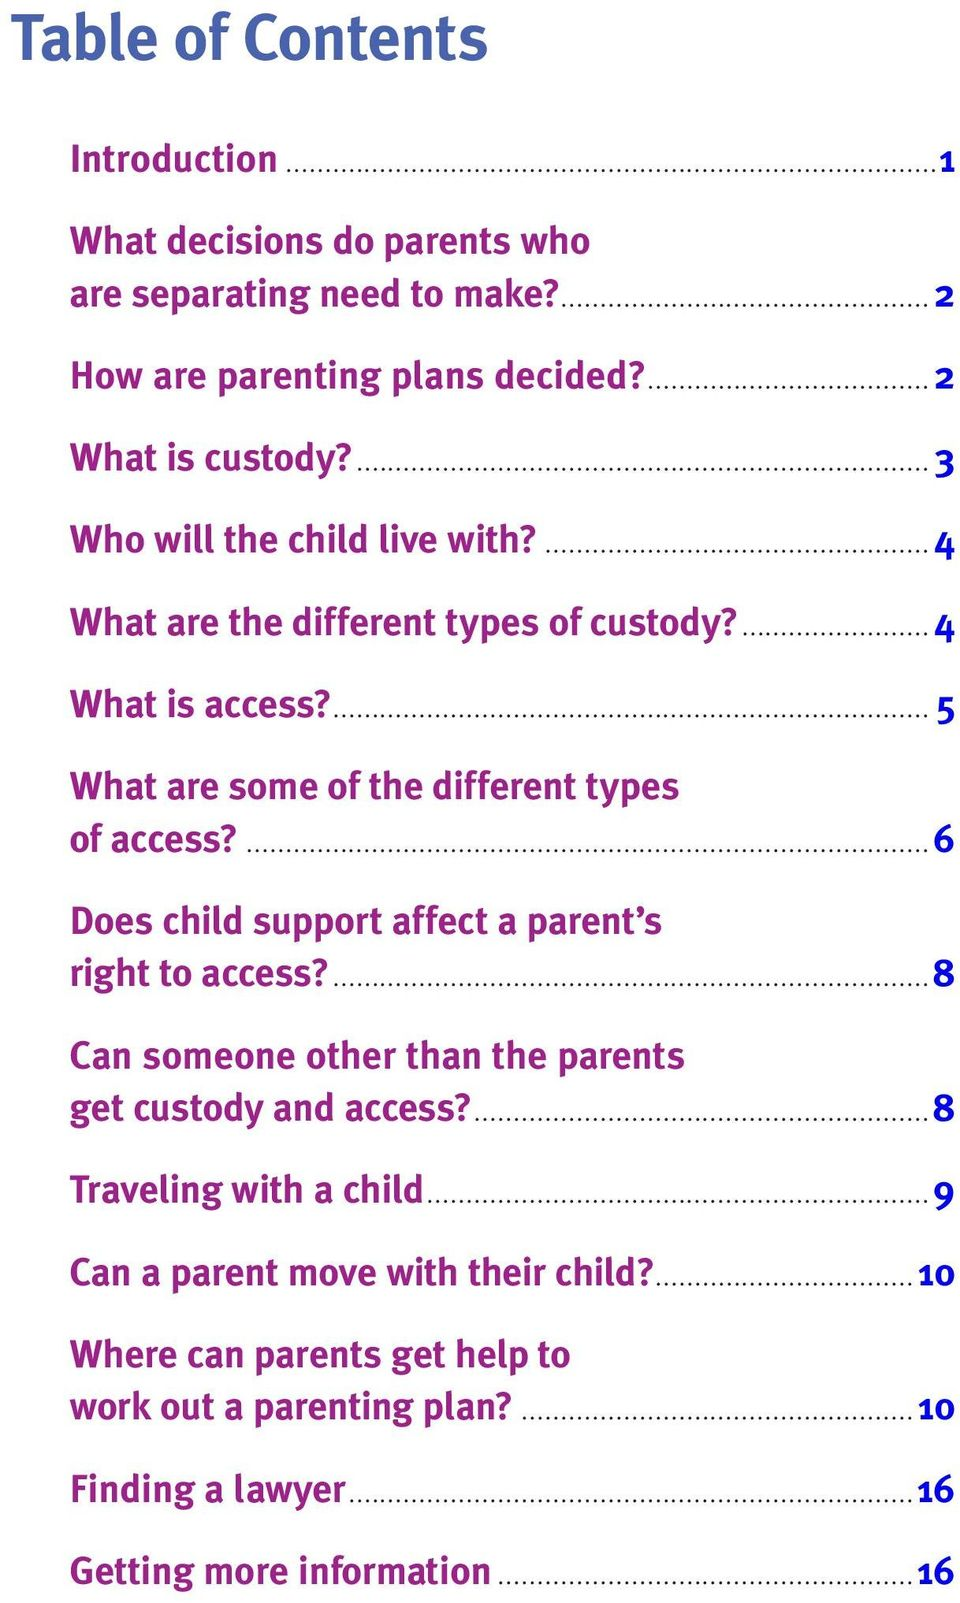 ...6 Does child support affect a parent s right to access?...8 Can someone other than the parents get custody and access?...8 Traveling with a child.